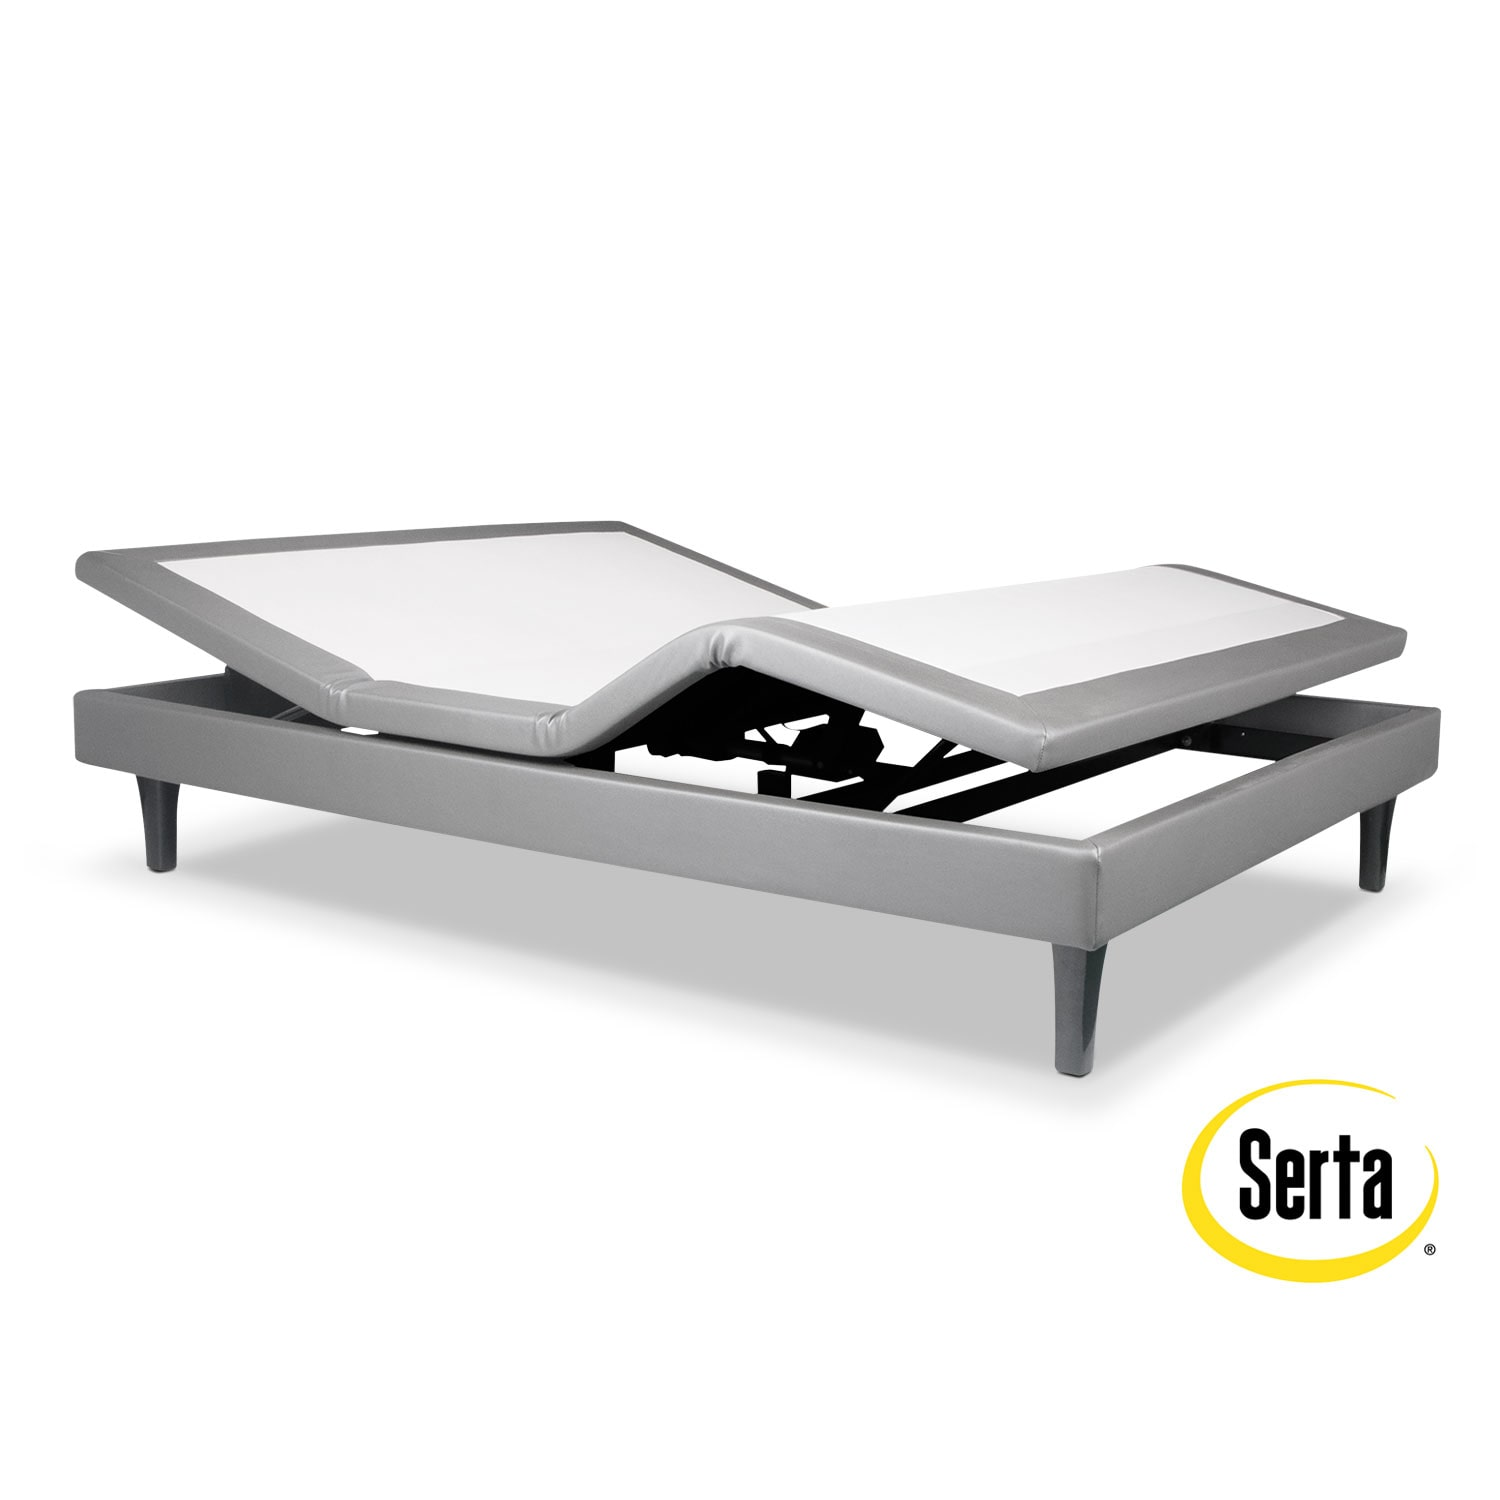 Serta Motion Perfect III Queen Adjustable Base